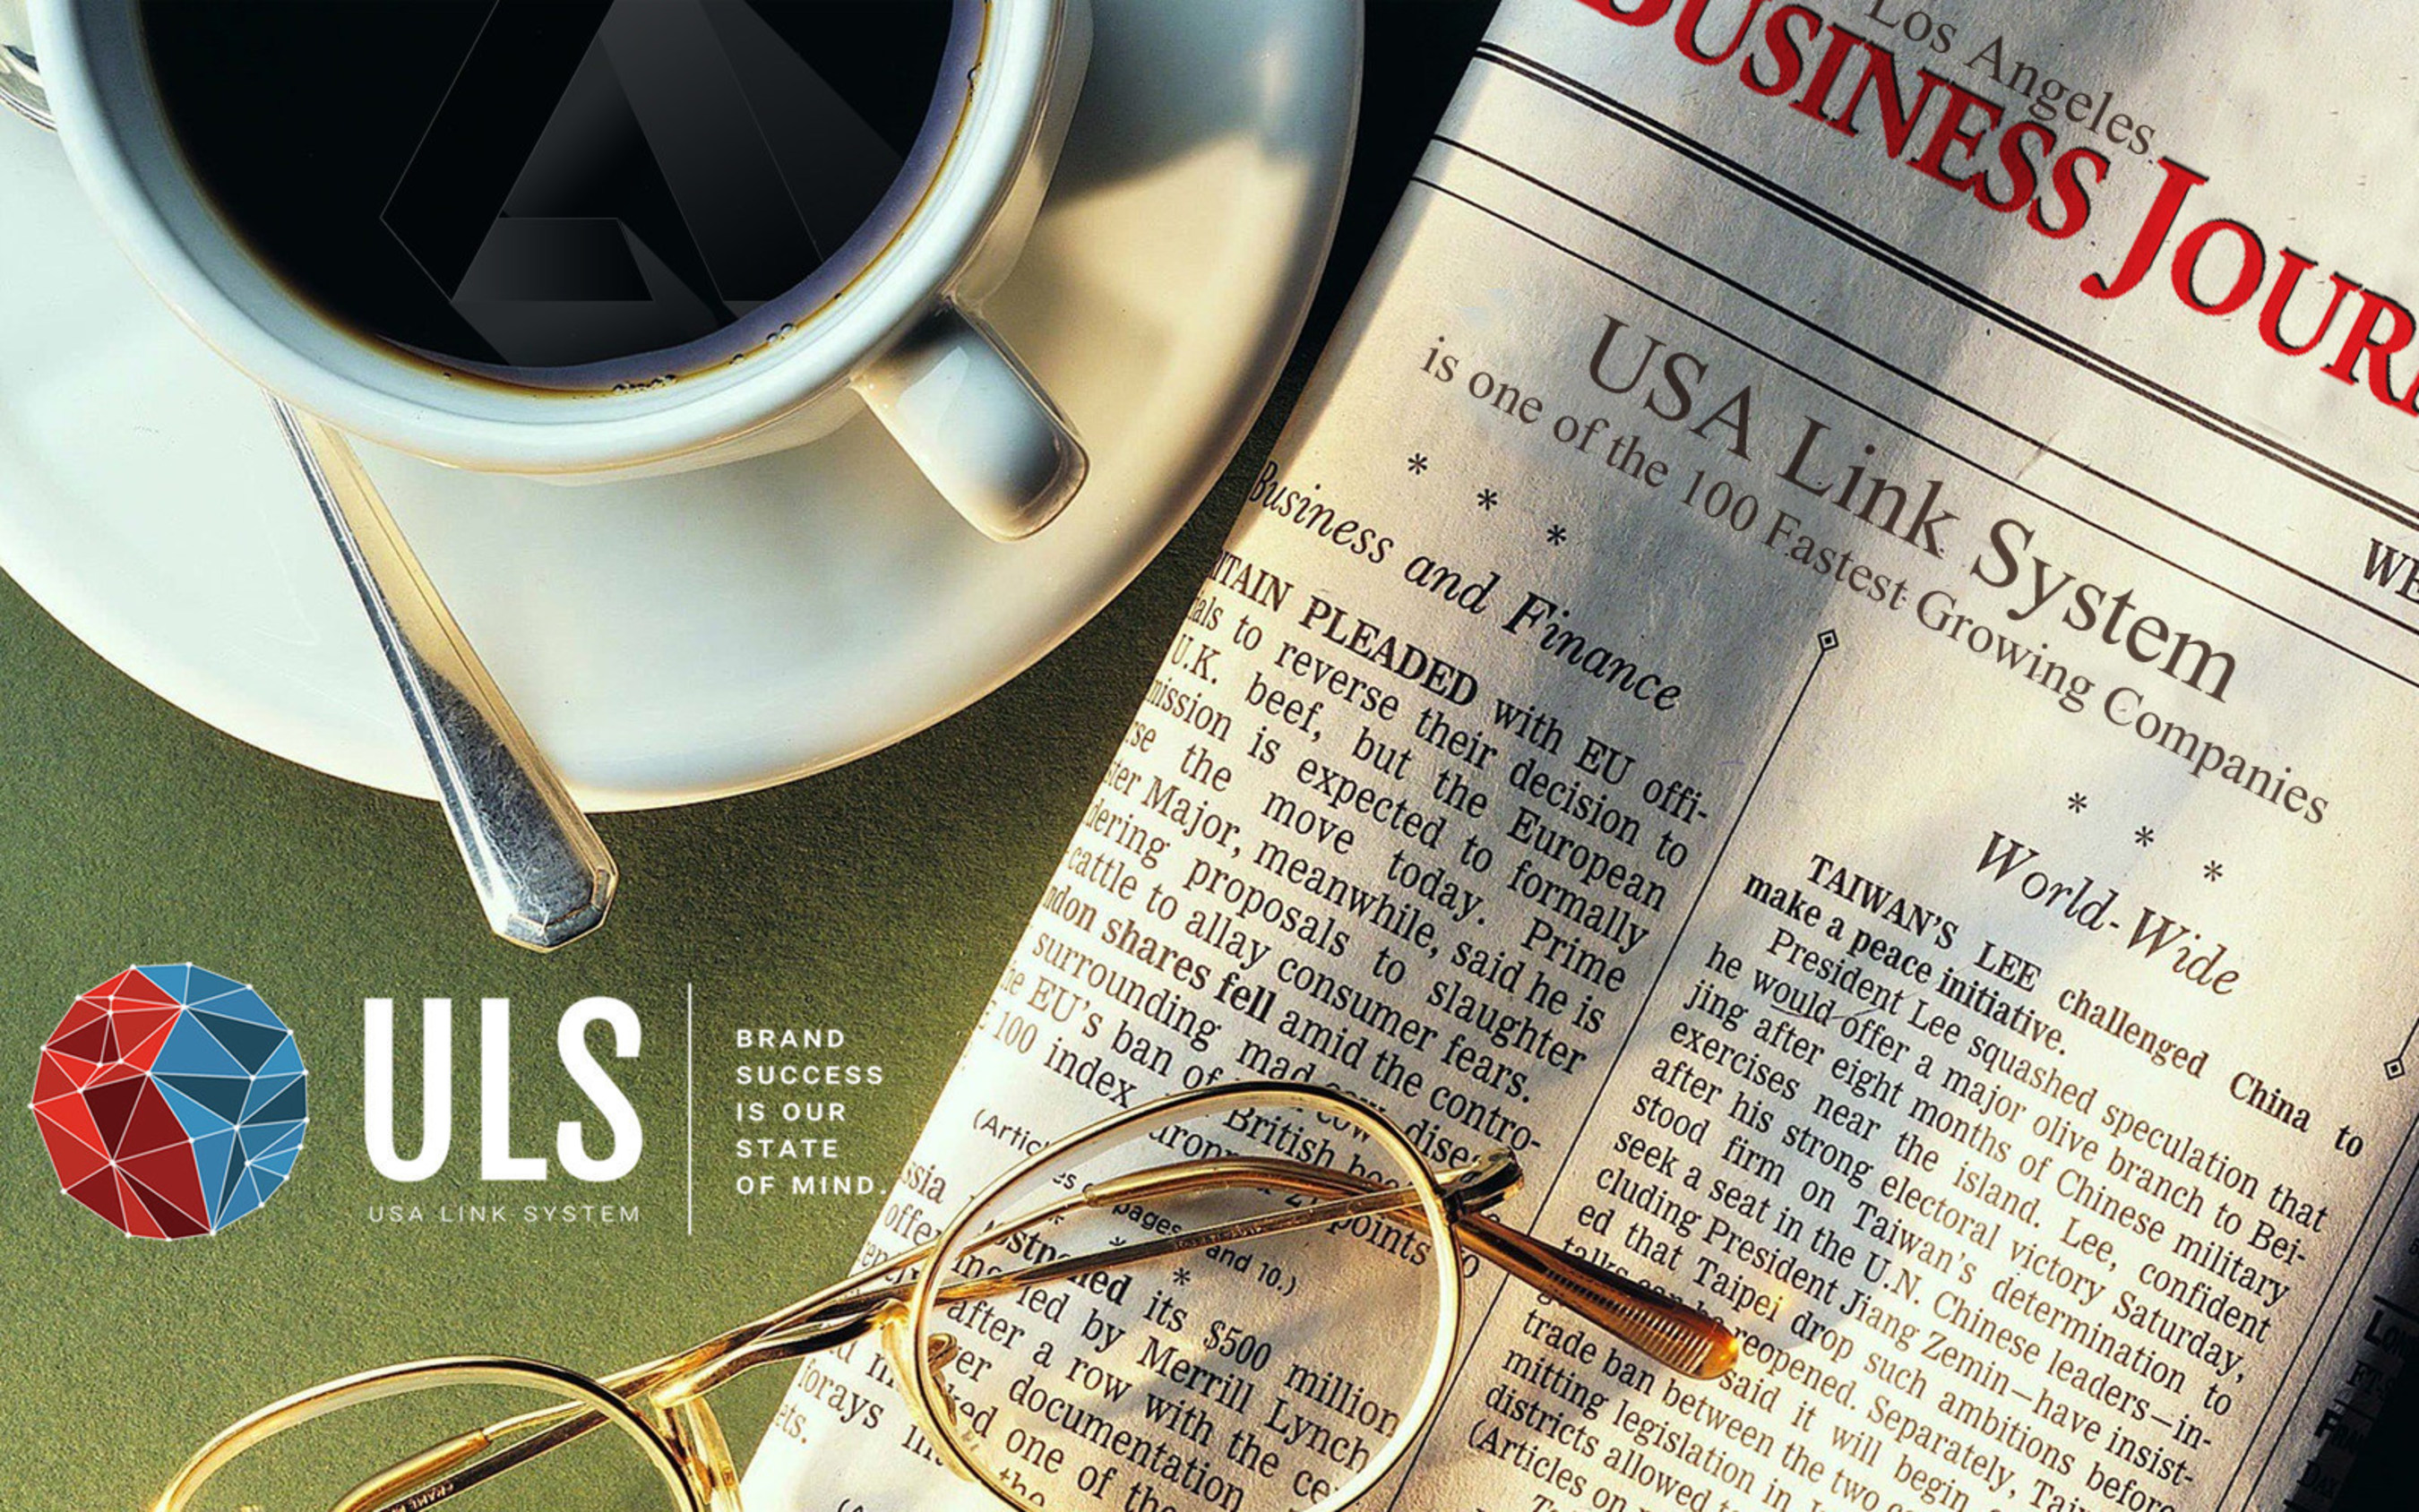 2016 JUST GETS BETTER FOR USA LINK SYSTEM AS THEY CELEBRATE THEIR INCLUSION IN RECENT LOS ANGELES BUSINESS JOURNAL LIST